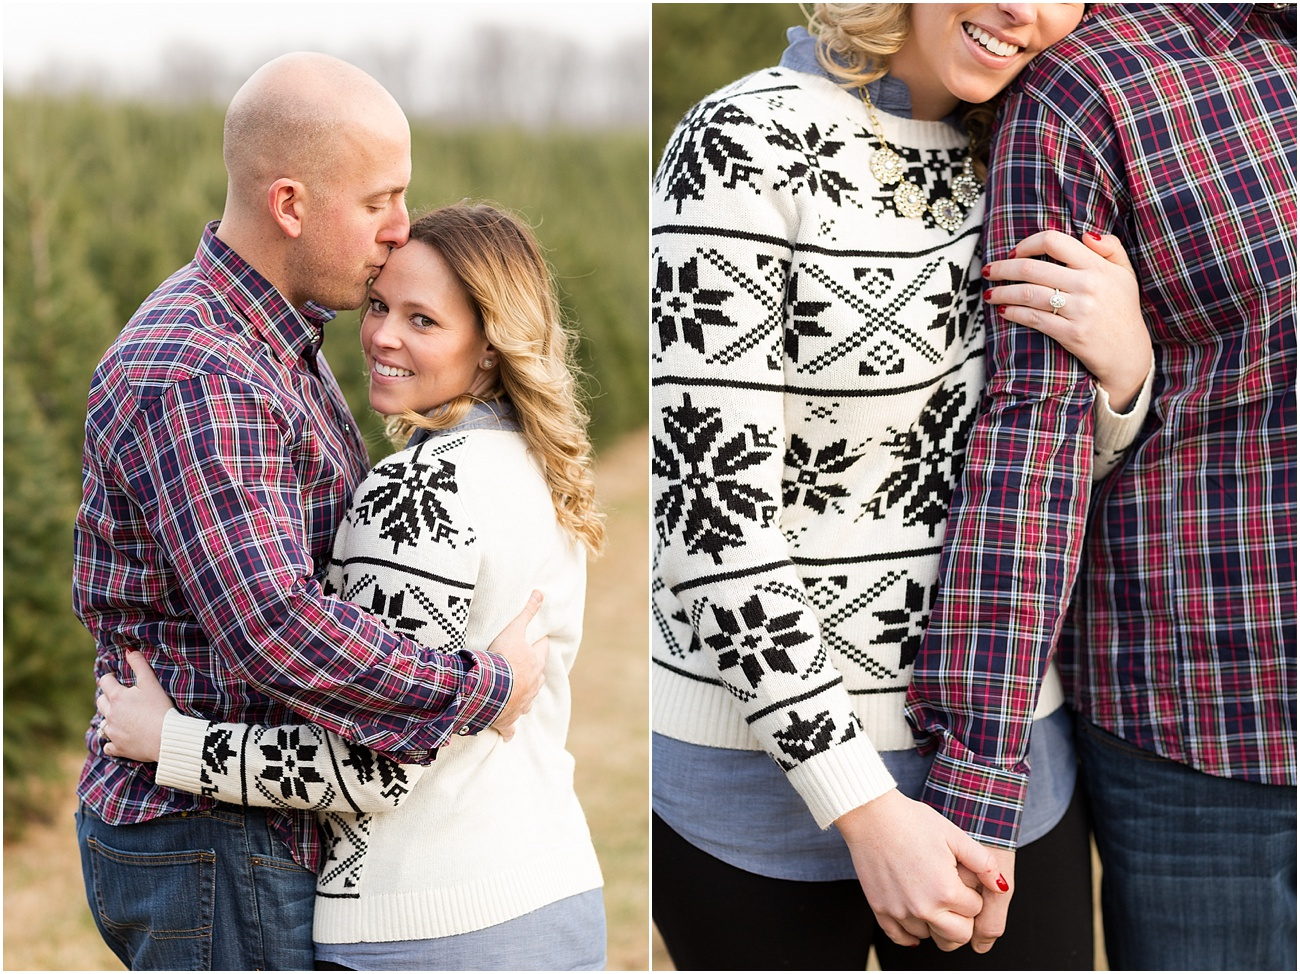 Pine_Valley_Farms_Engagement_Maryland_Wedding_Photographer_0004